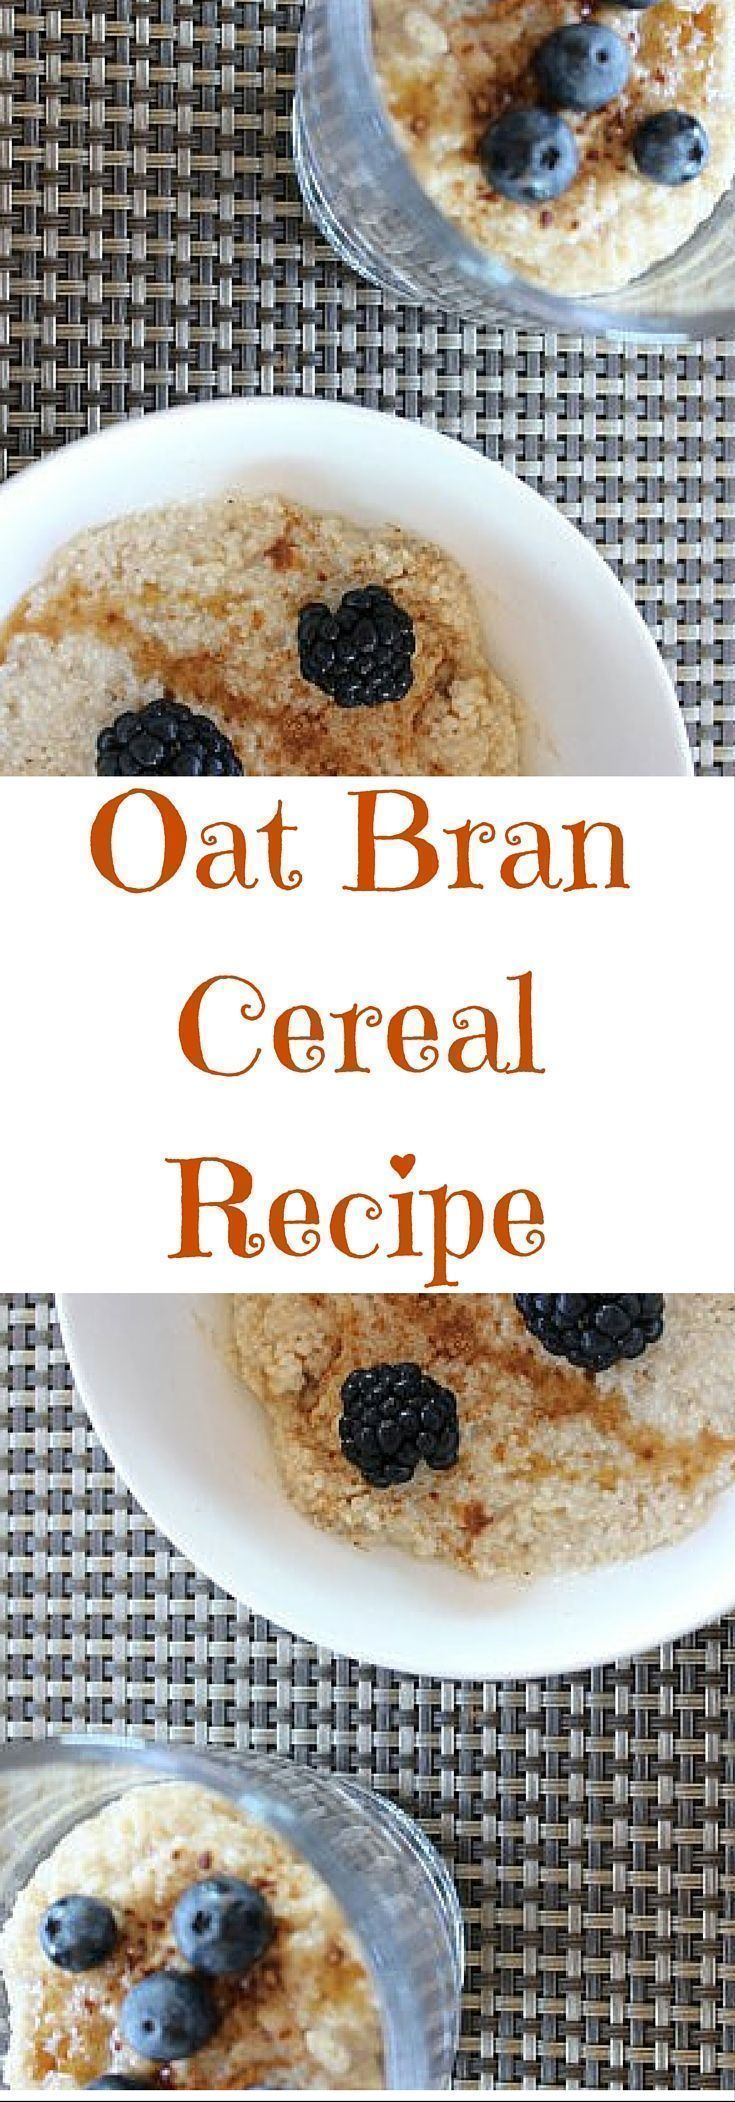 This oat bran cereal recipe is tasty and delicious for breakfast. Easy breakfast recipe. Click here for this recipe or pin to save for later.